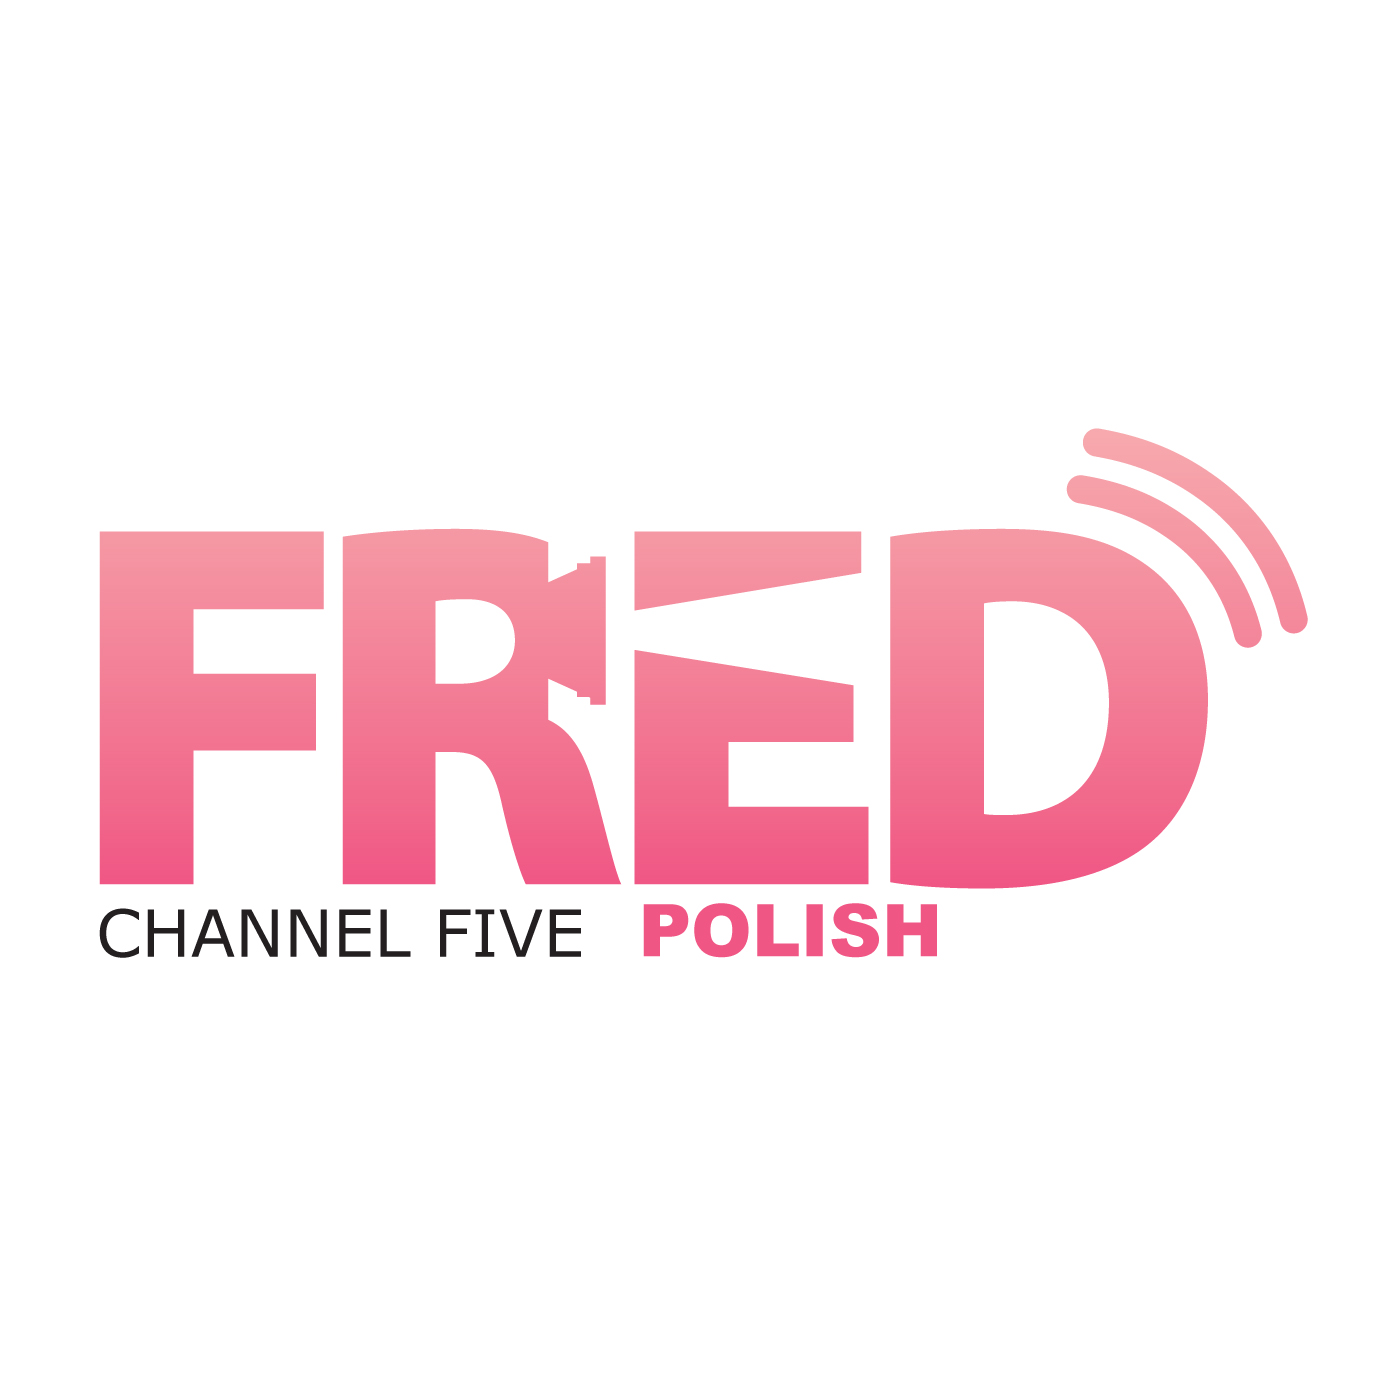 Fred Polish Channel » FRED Polish Podcast